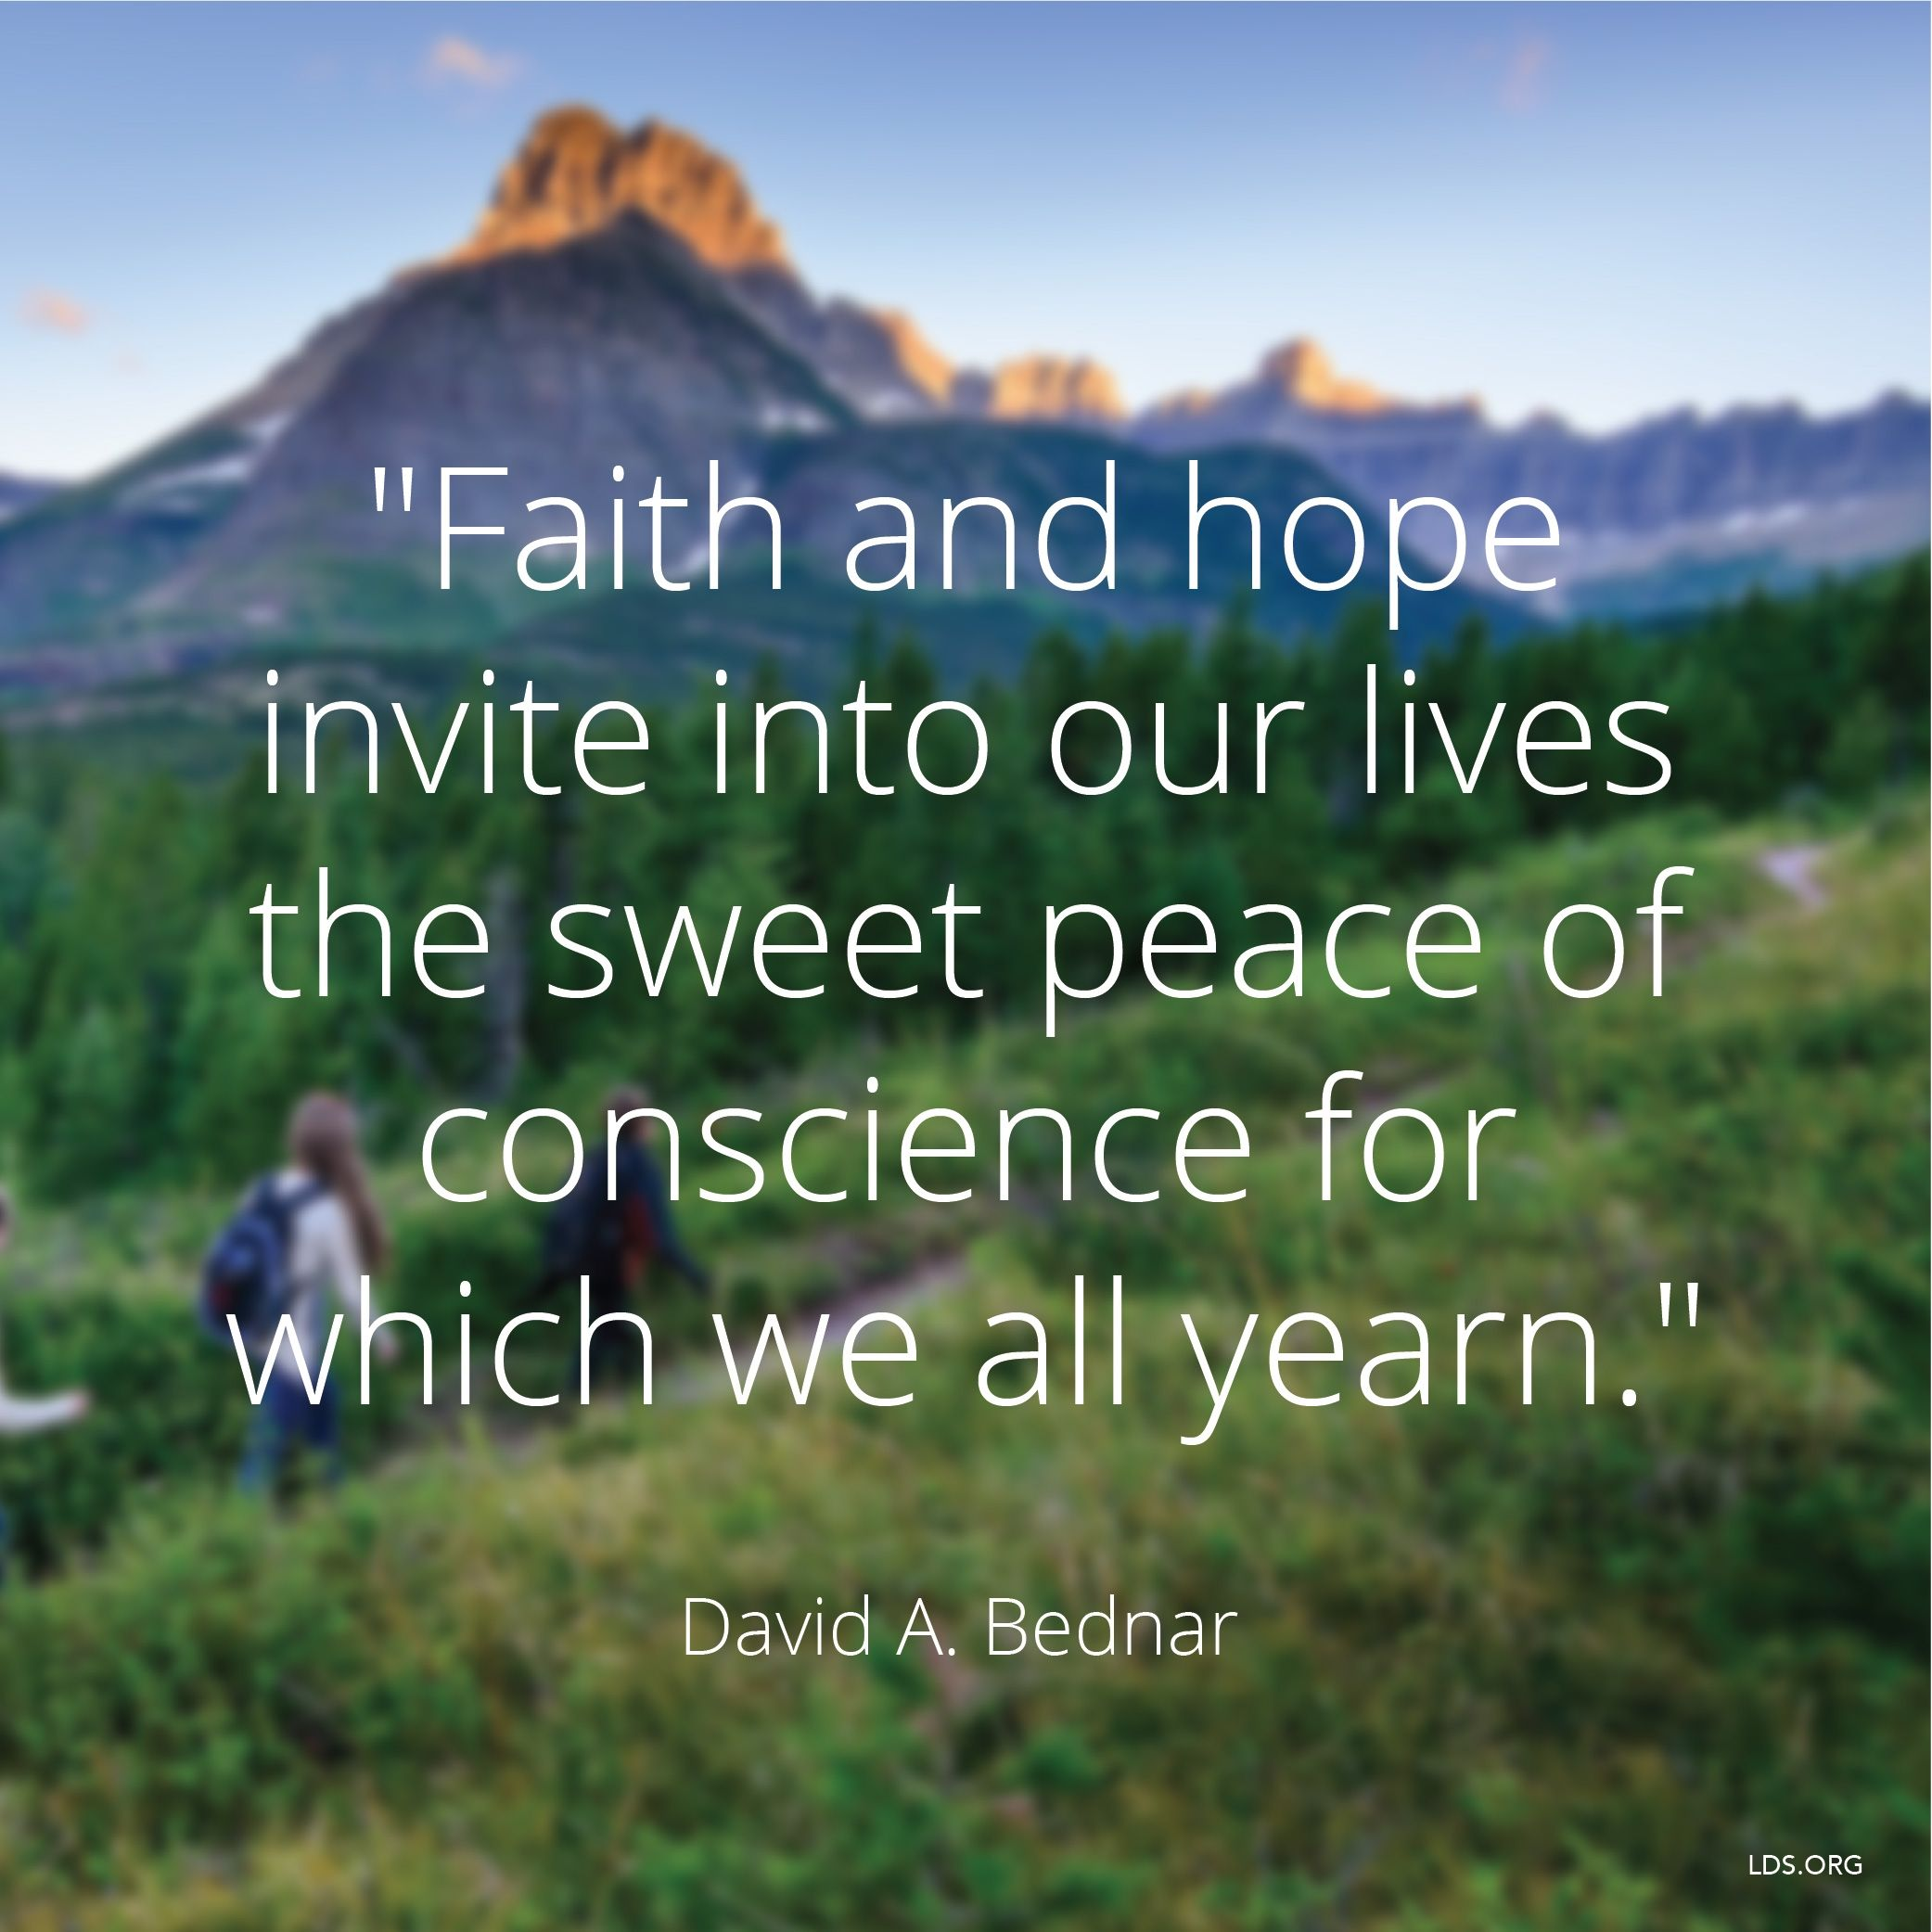 """""""Faith and hope invite into our lives the sweet peace of conscience for which we all yearn.""""—Elder David A. Bednar, """"Therefore They Hushed Their Fears"""""""